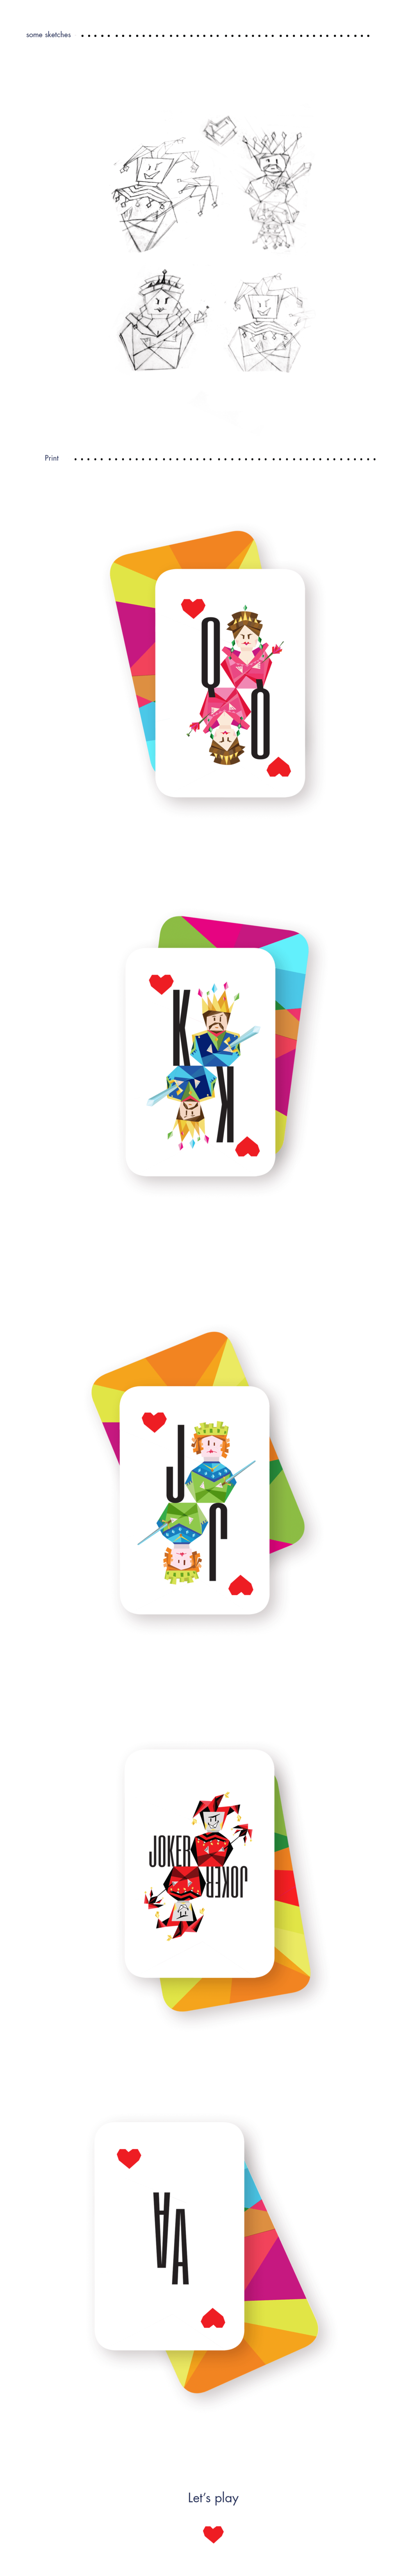 royal_cards.png